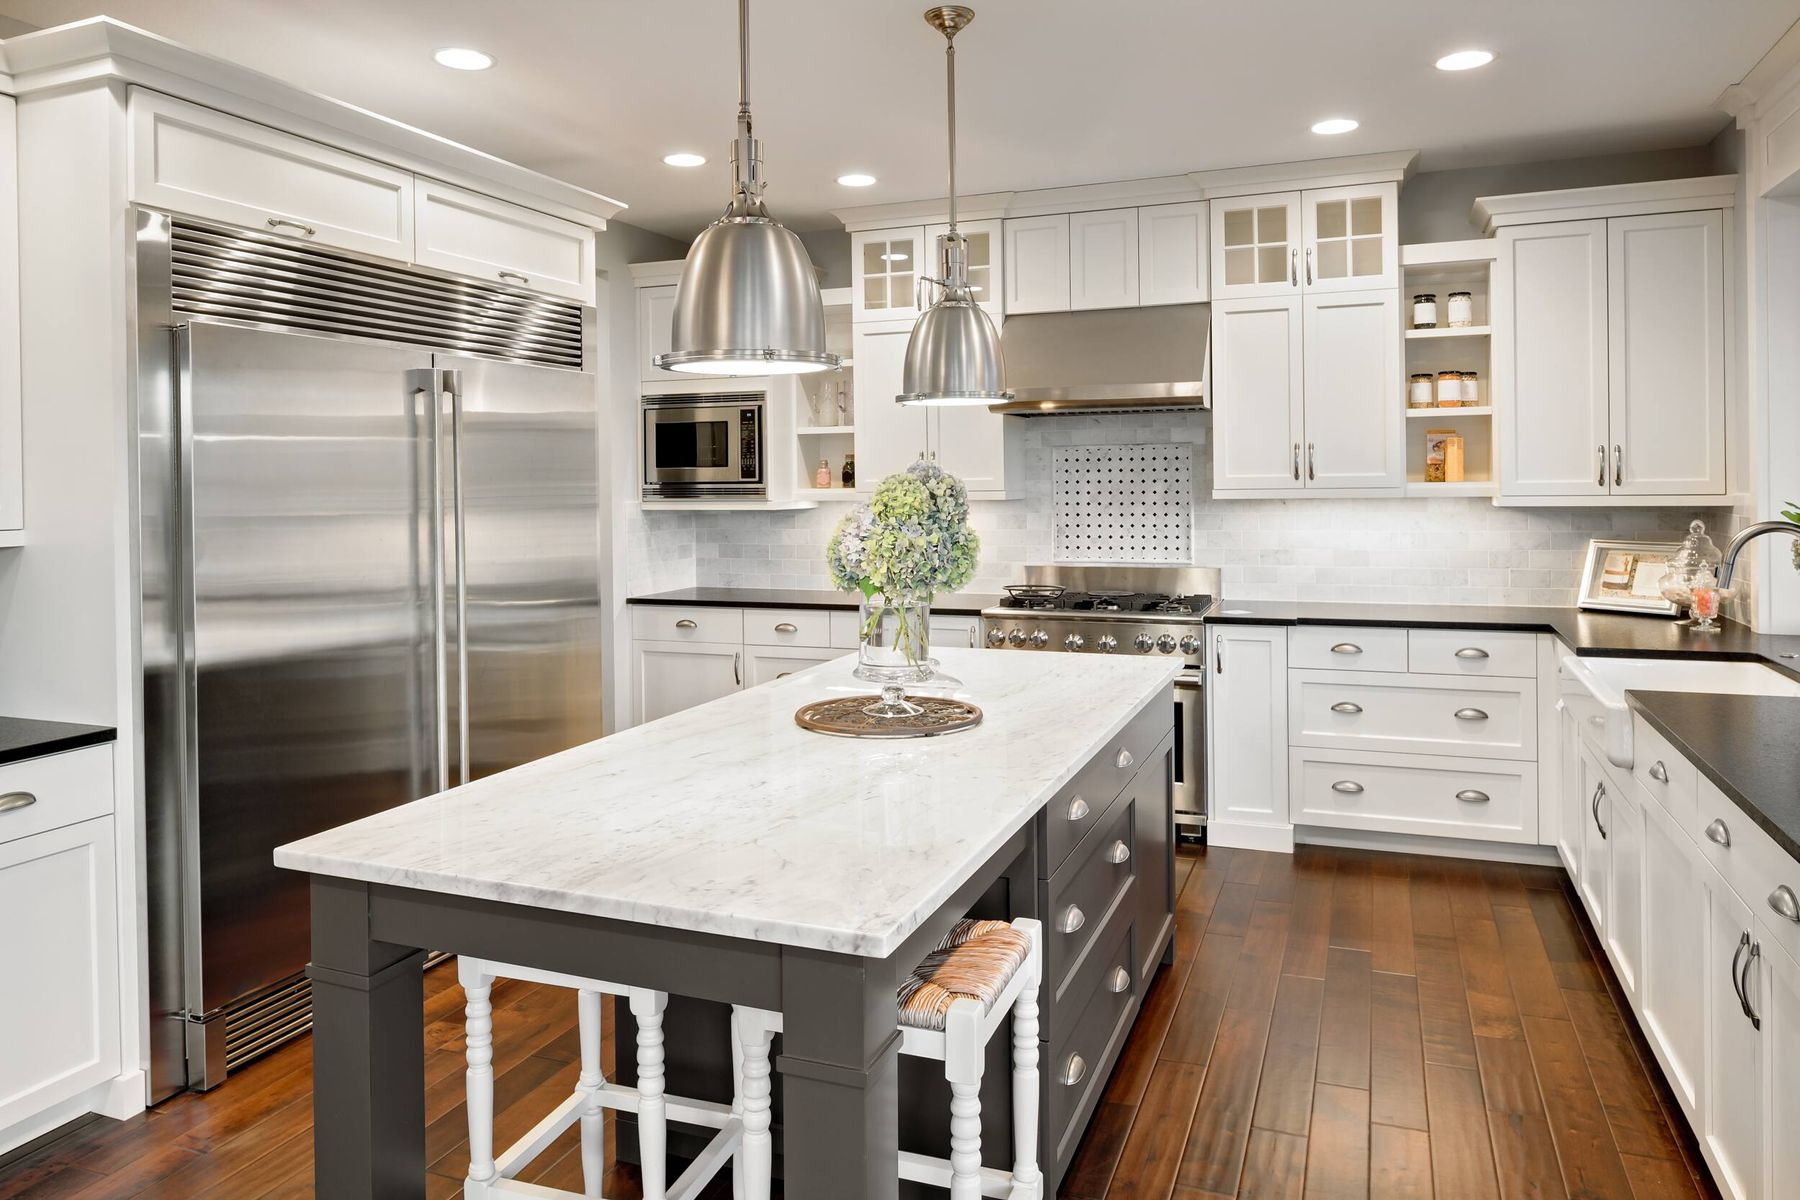 How to Remove Oil Stains from Kitchen Surfaces | Cleanipedia